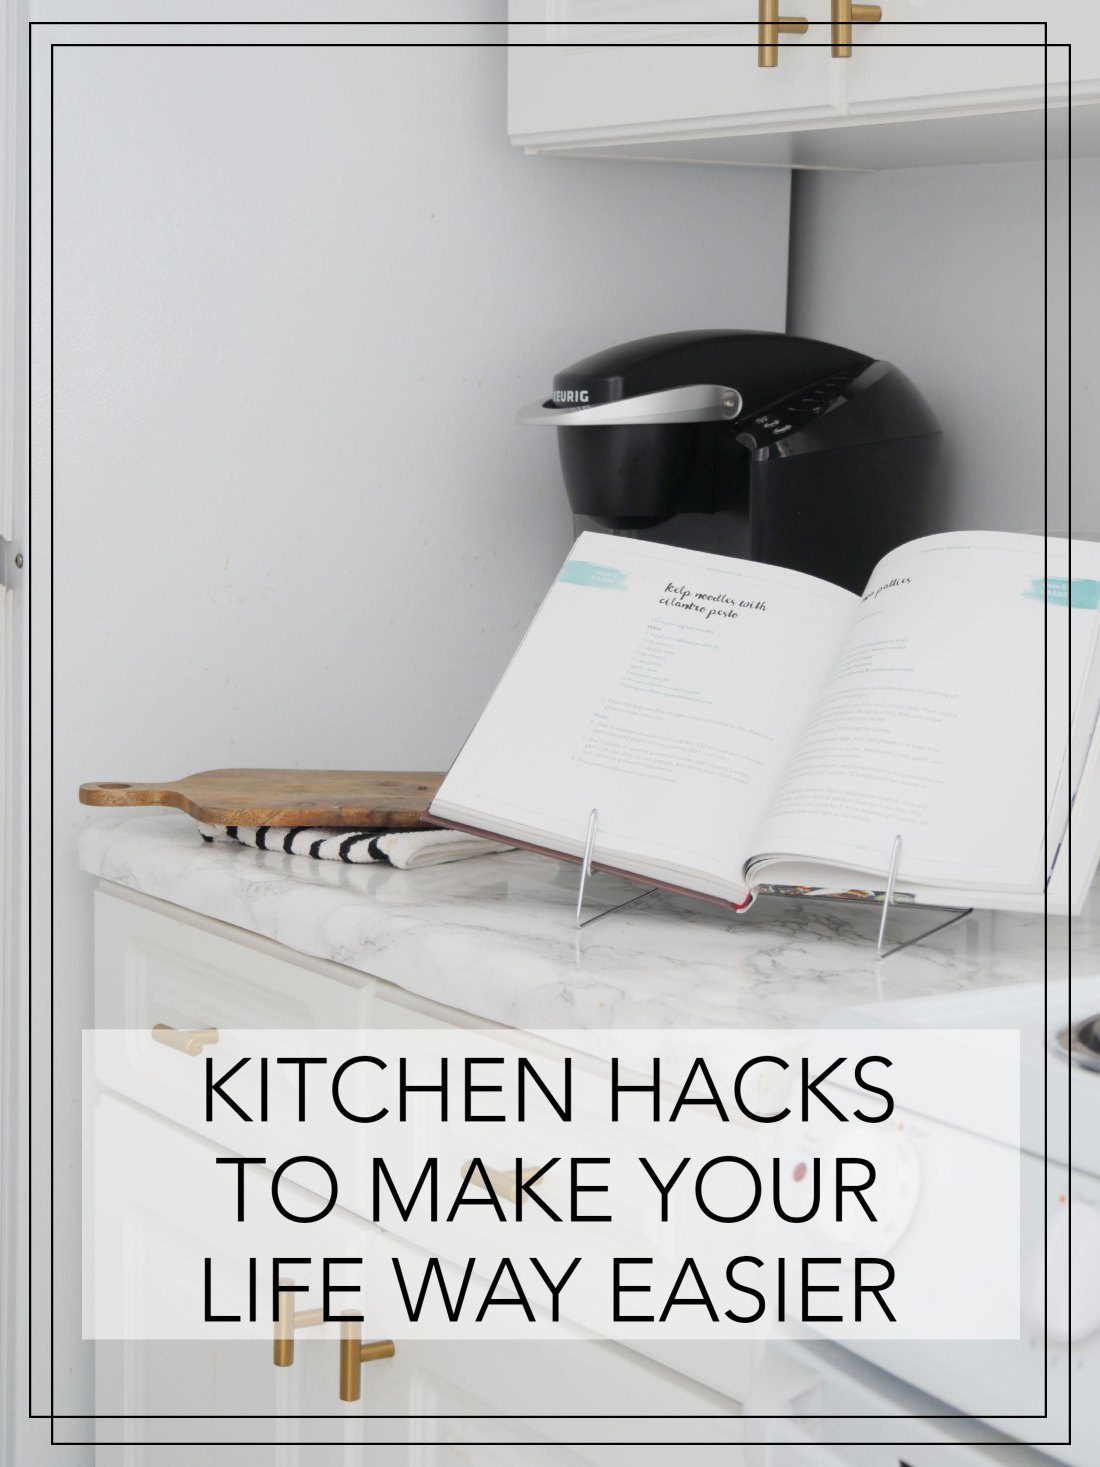 Struggle to cook in a small kitchen? These kitchen hacks will ensure cooking is a breeze in your tiny apartment! #kitchenideas  #smallkitchenideas #kitchenideasonabudget  #rentalhomedecorating  #rentaldecorating #rentalapartmentdecorating